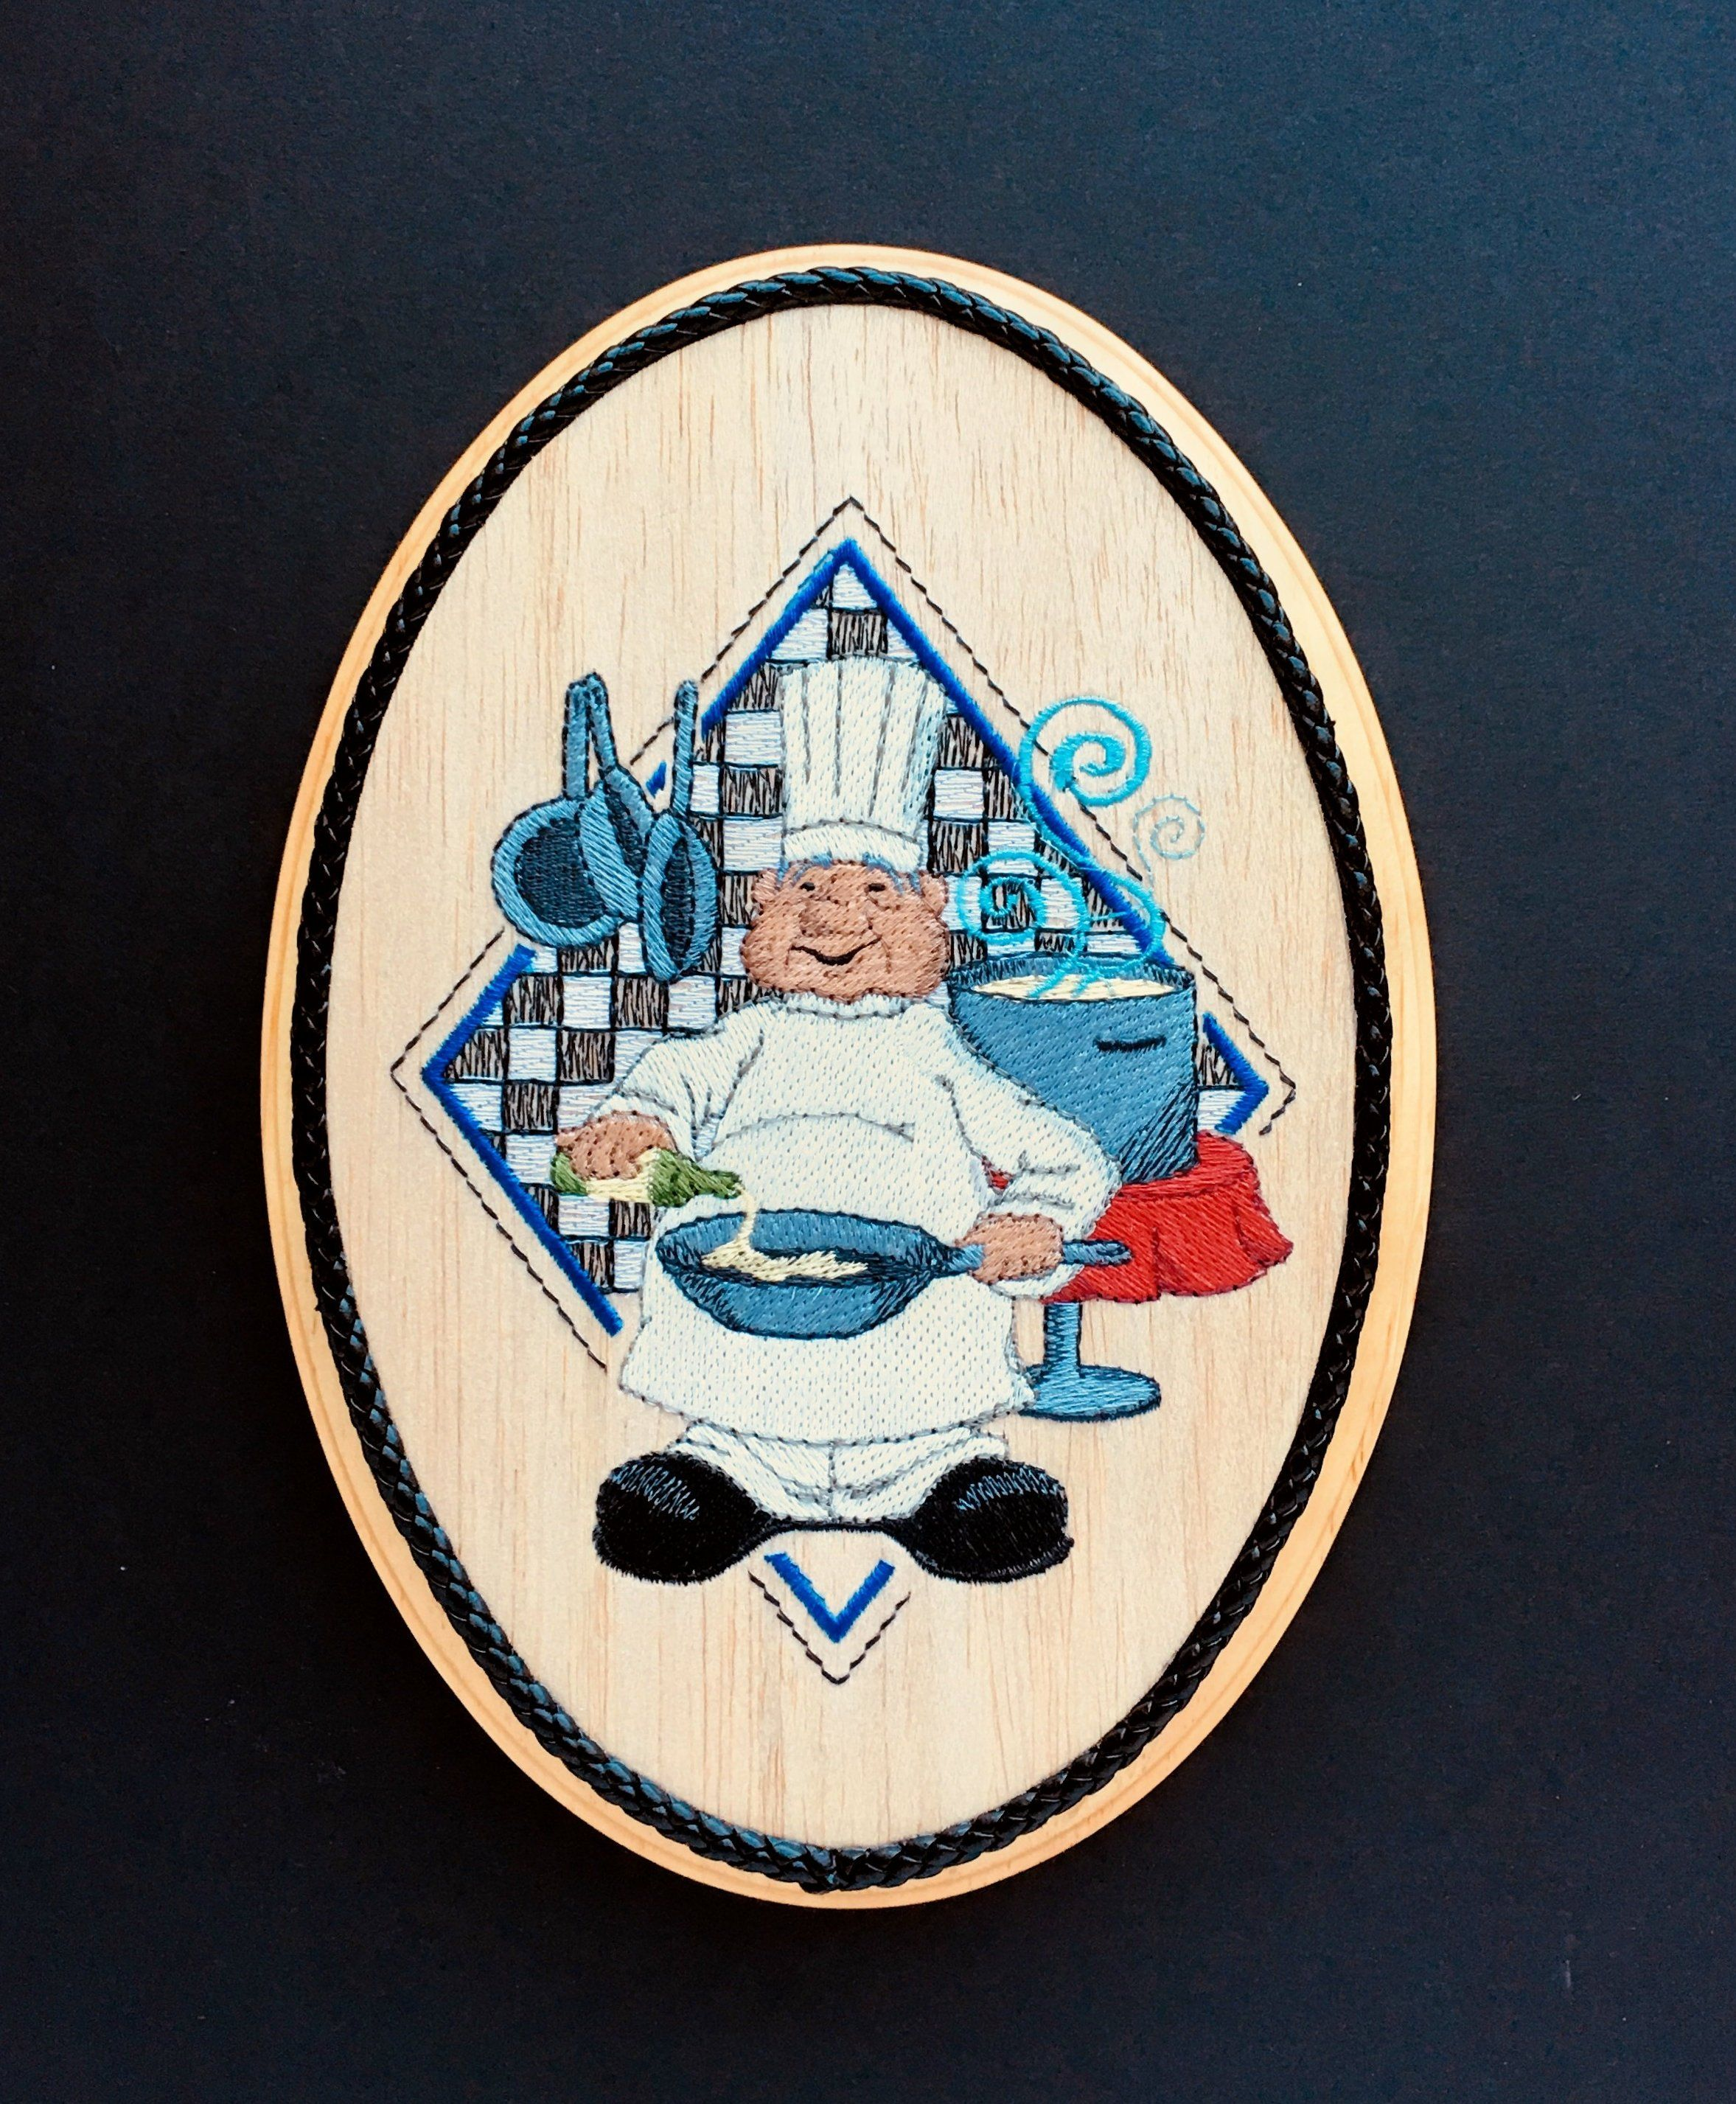 French chef wall art balsa wood embroidery art kitchen chef blue